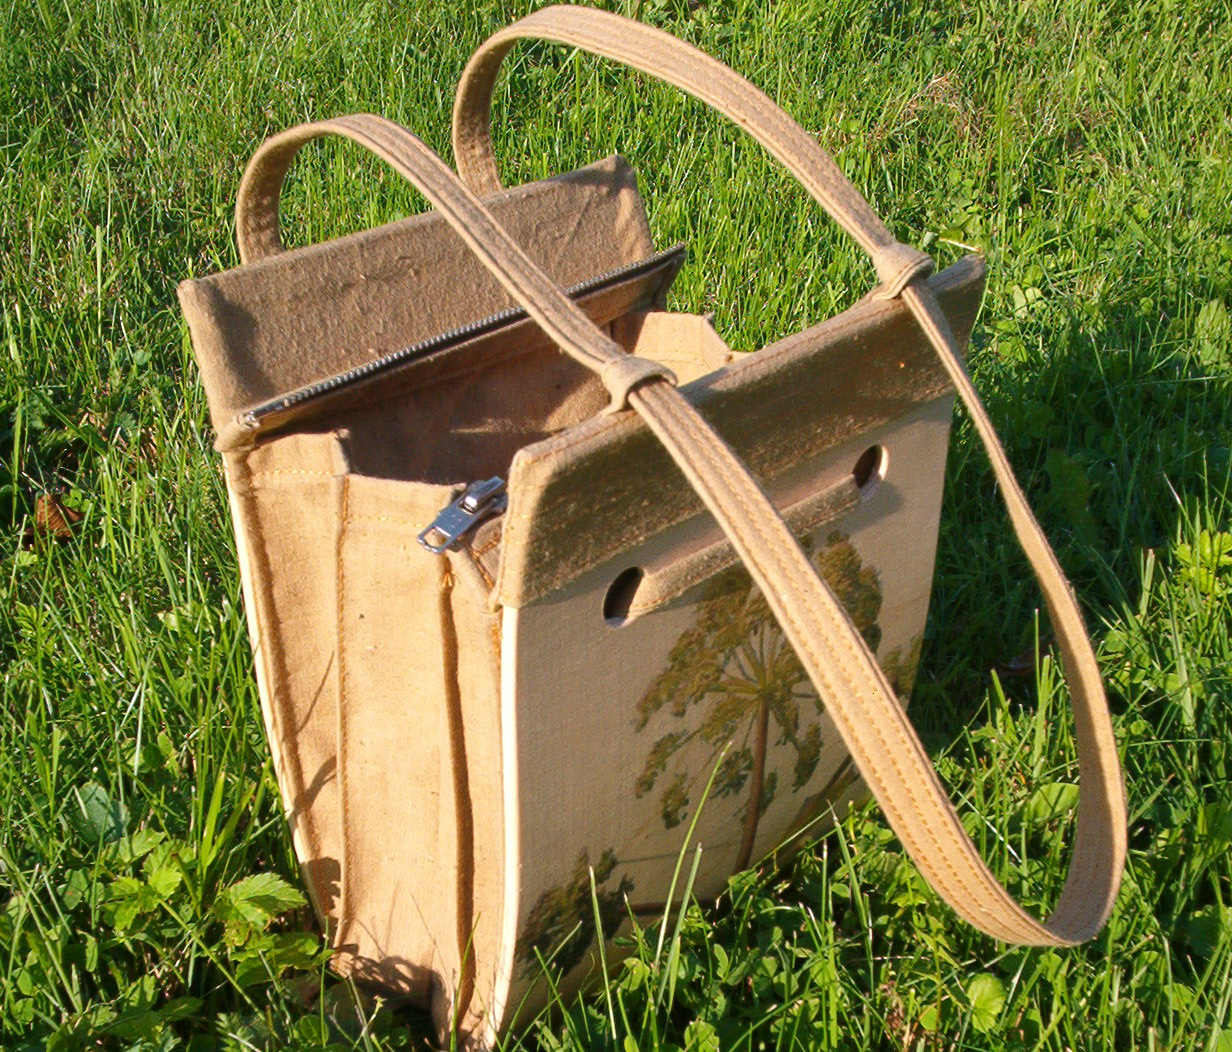 larger wooden bag with a picture of an oak, laying on the grass